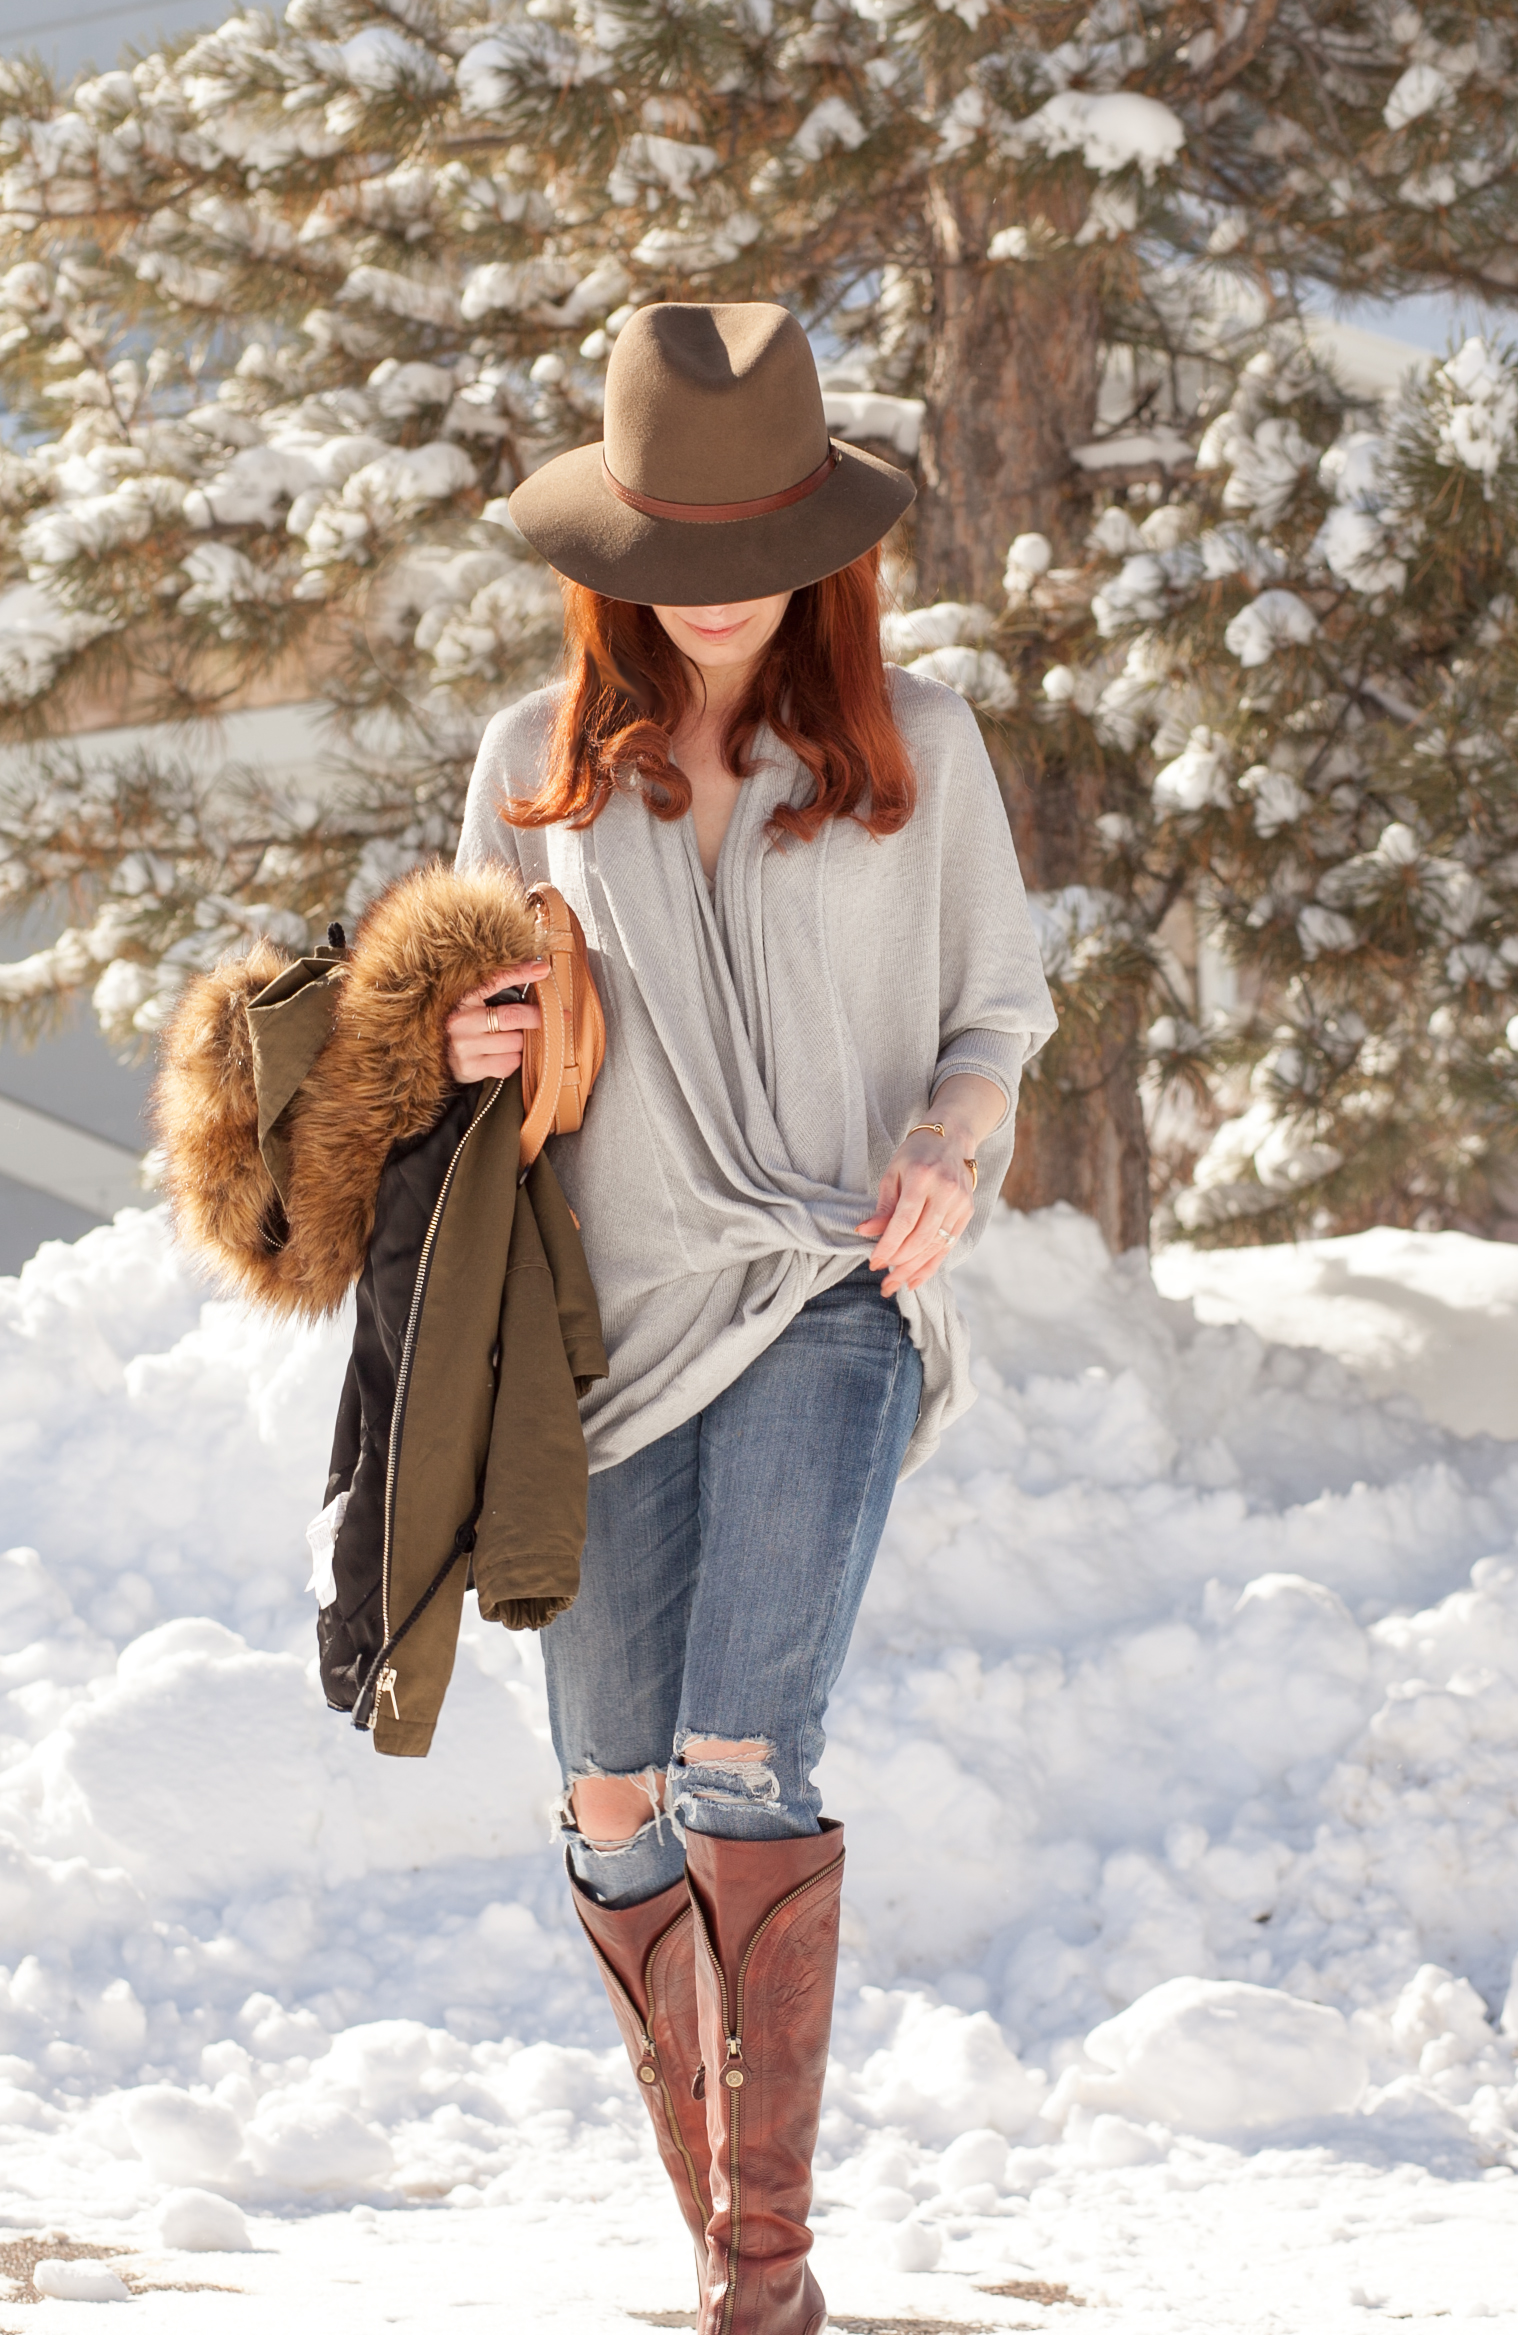 ZARA Olive Faux Fur Parka + We The Free Wrap Sweater + Chloe Mini Marcie + Rag & Bone Floppy Wool Fedora in Pecan + Ray-Ban Aviators via http://thechloeconspiracy.com #ootd #winterstyle